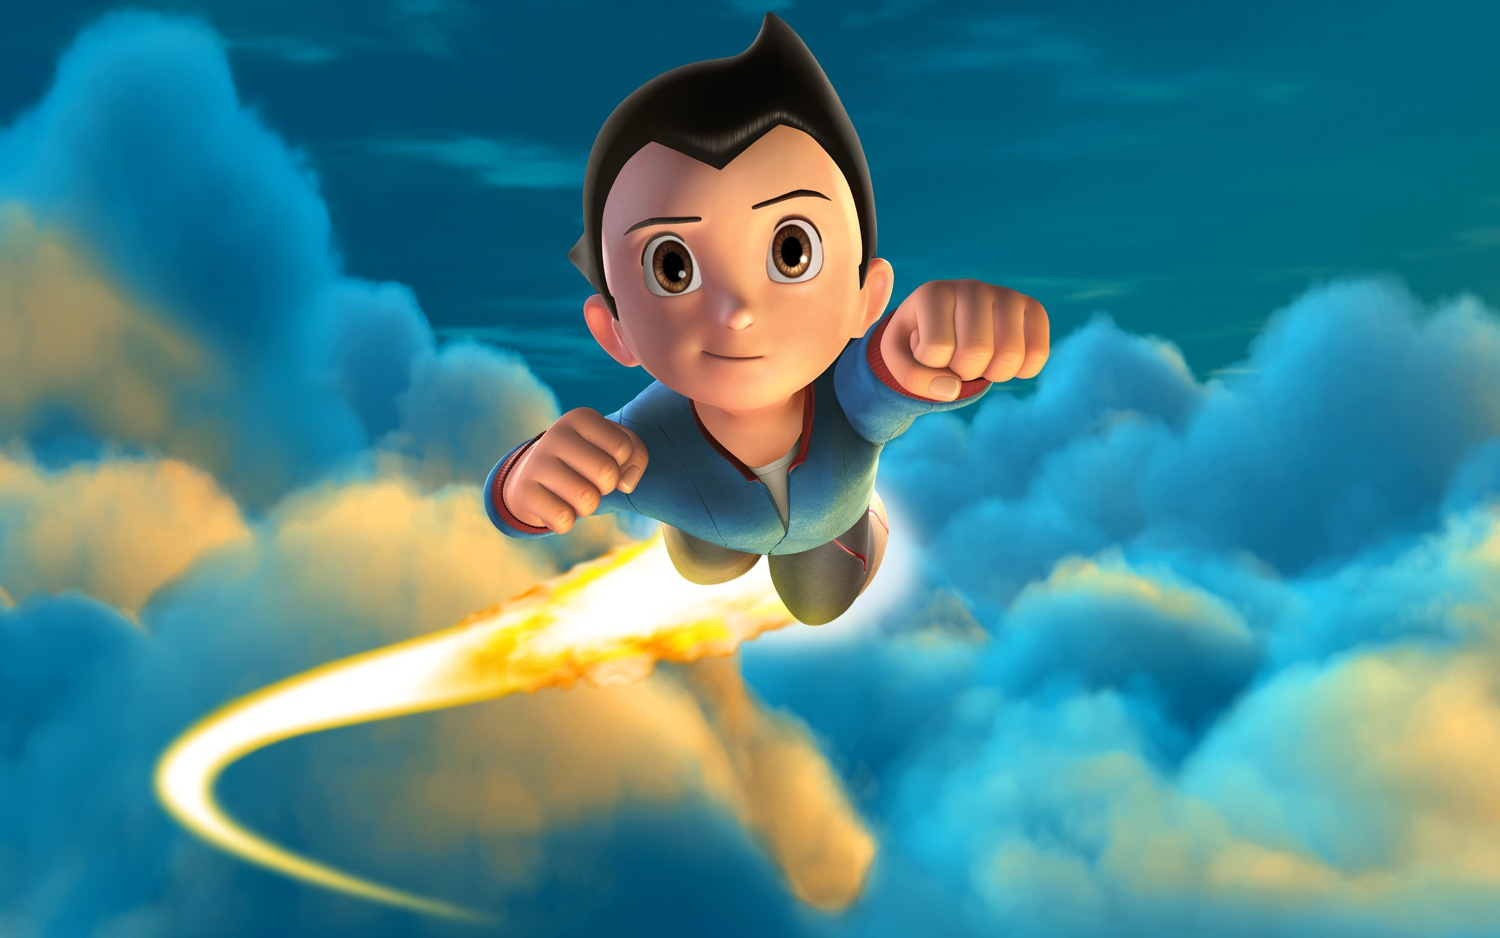 Astro Boy Cartoon Room 2 Parklands: ASTR...